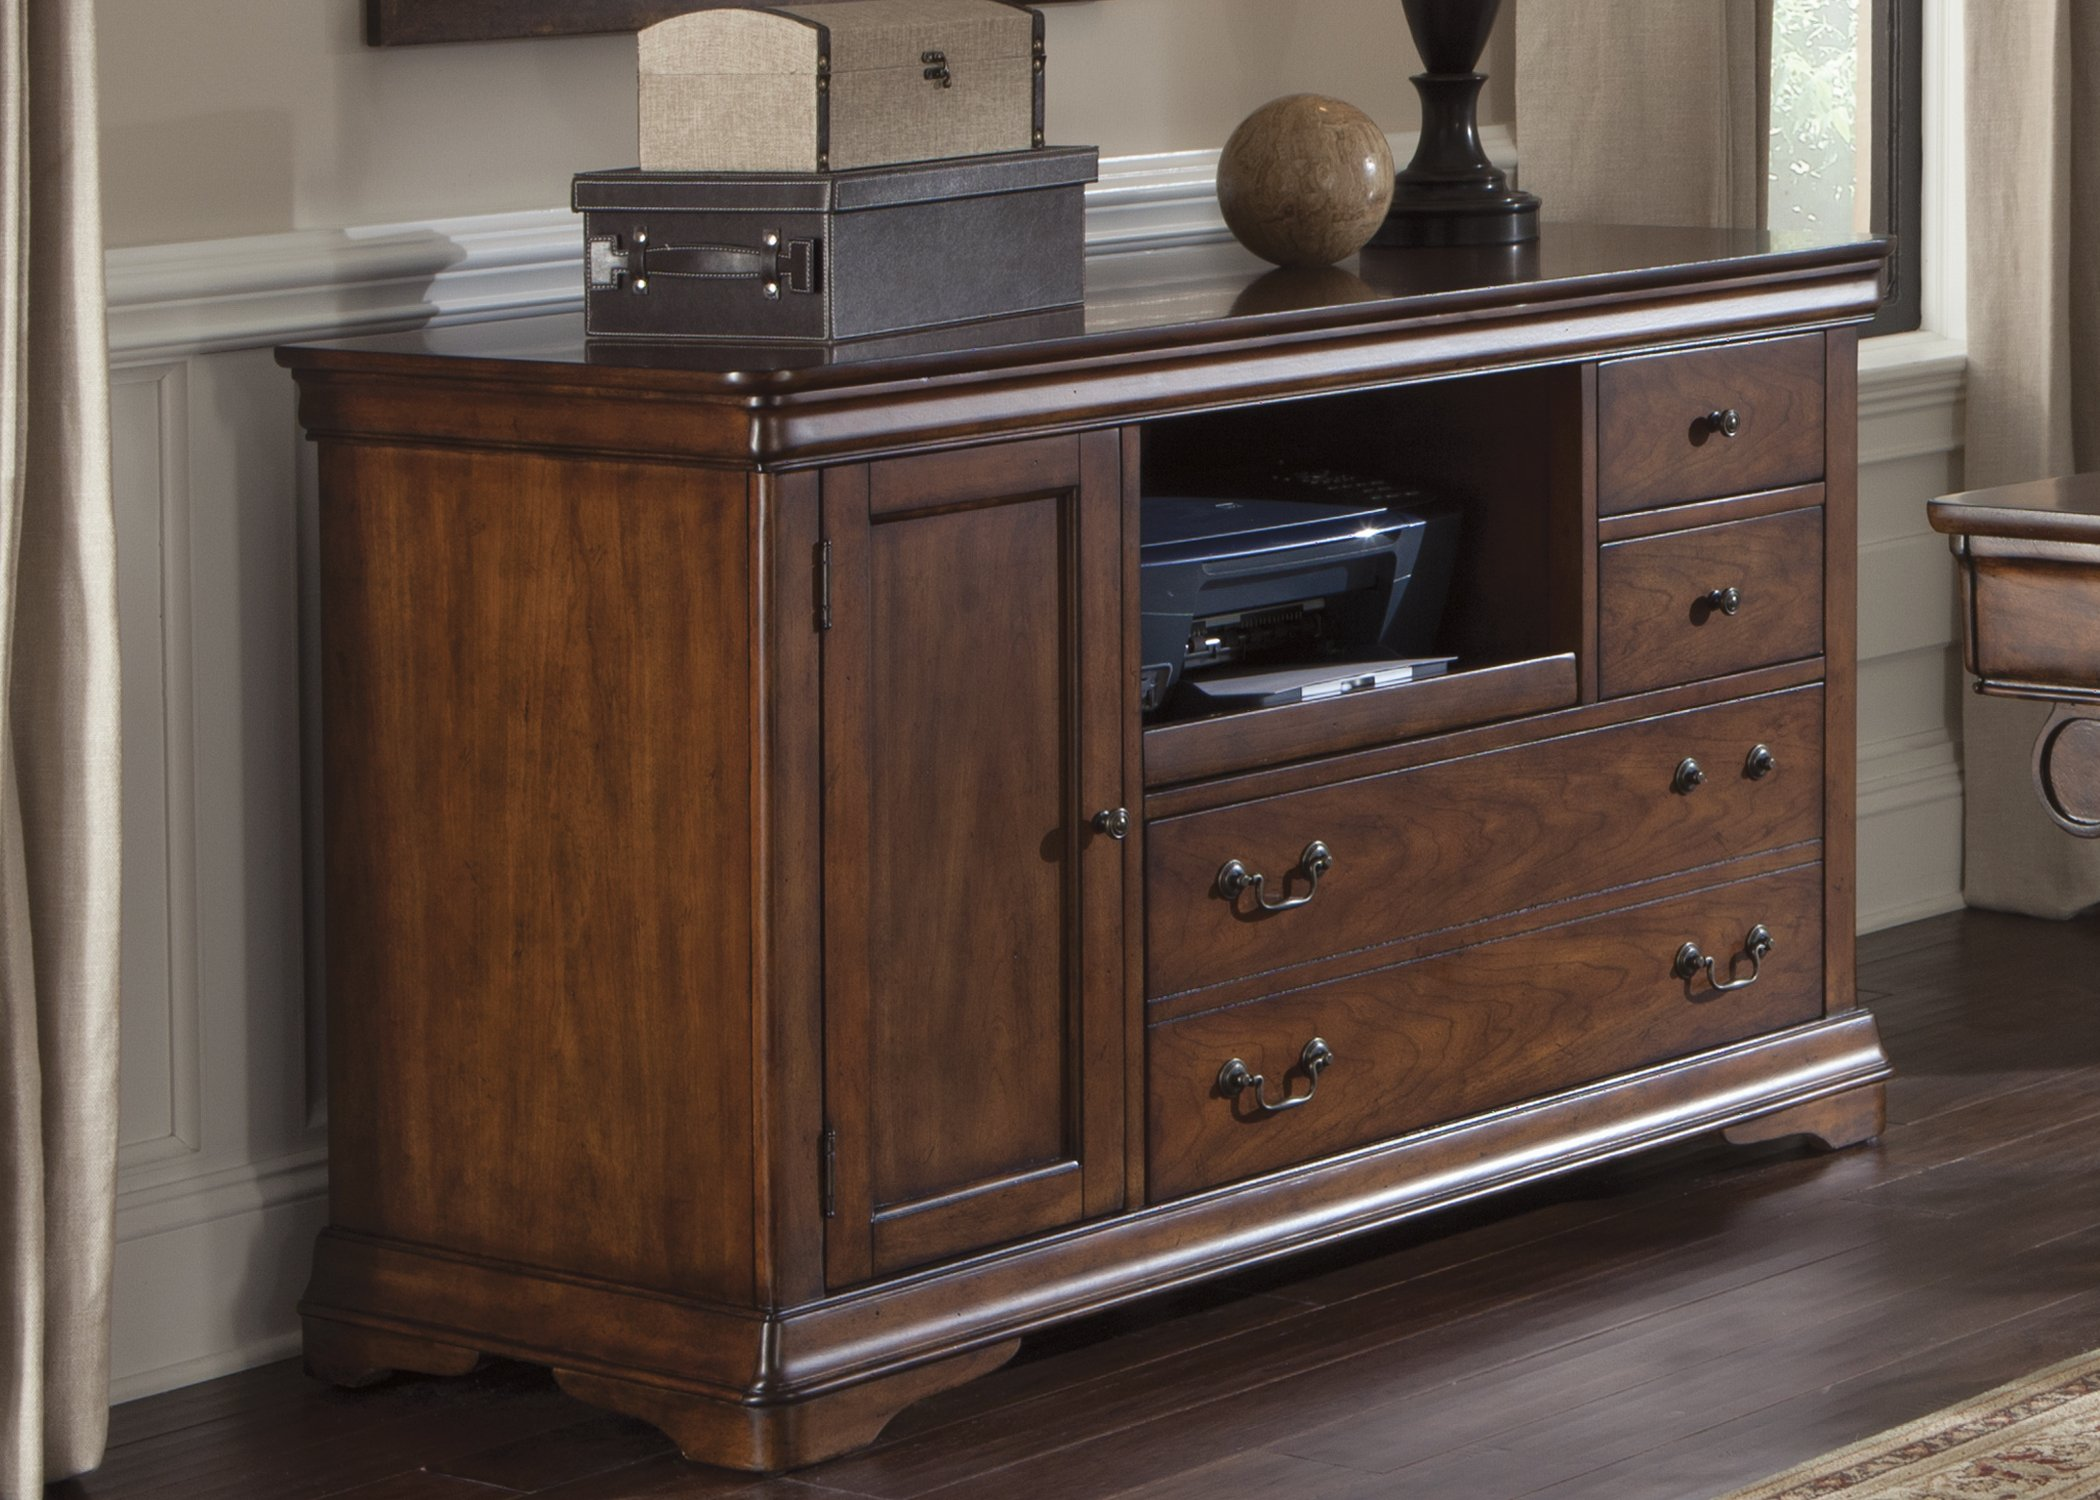 Liberty Furniture Industries 378-HO121 Brookview Home Office Credenza, Rustic Cherry Finish